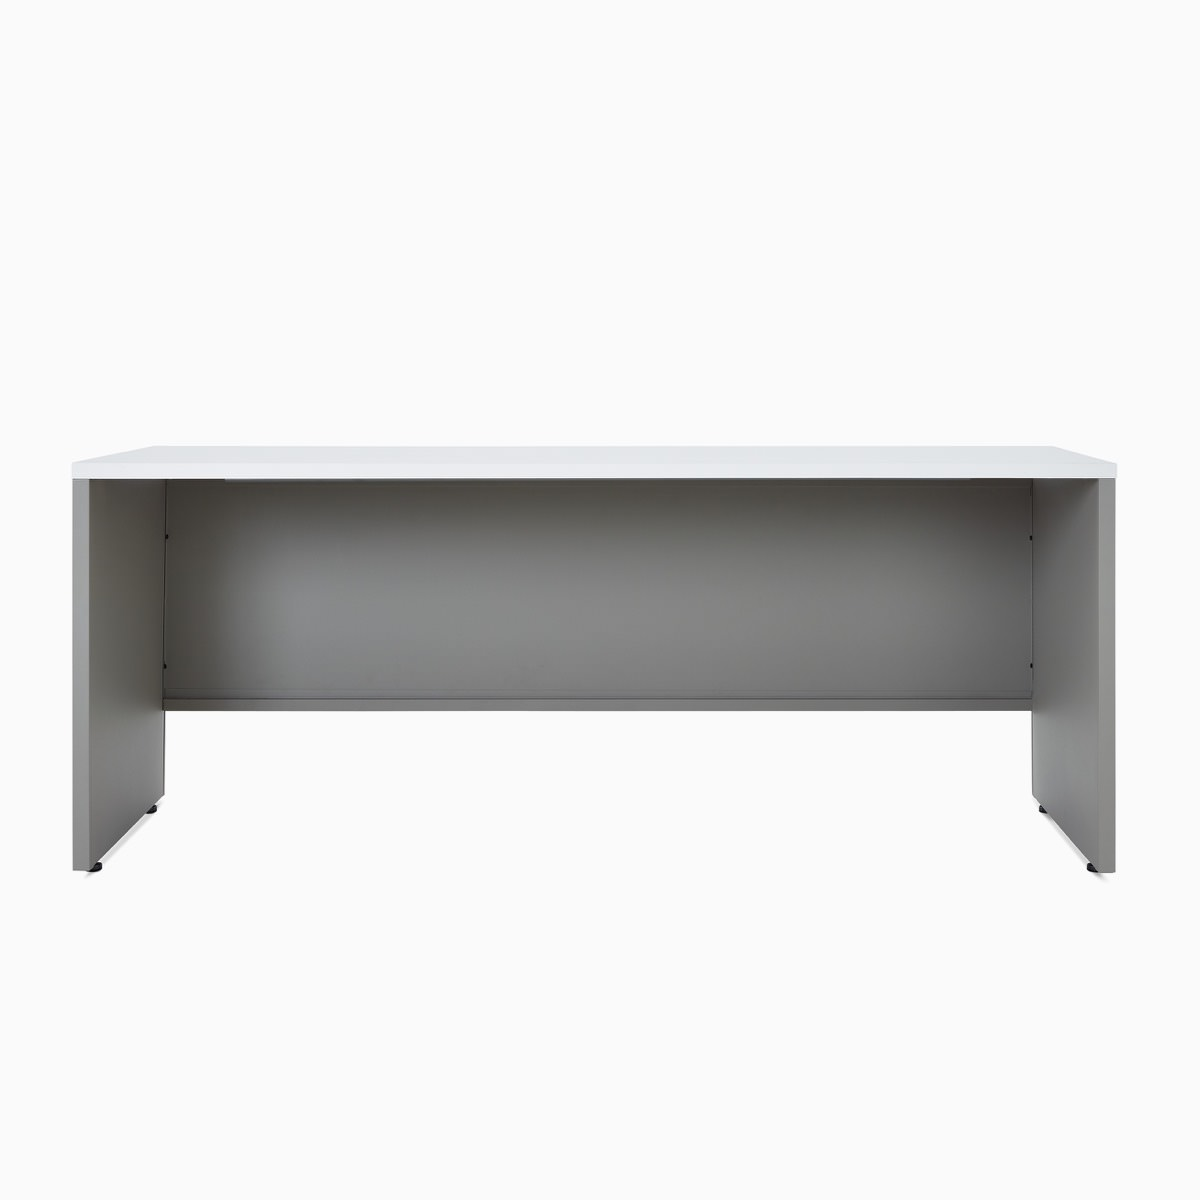 A Canvas Metal Desk partial modesty panel.